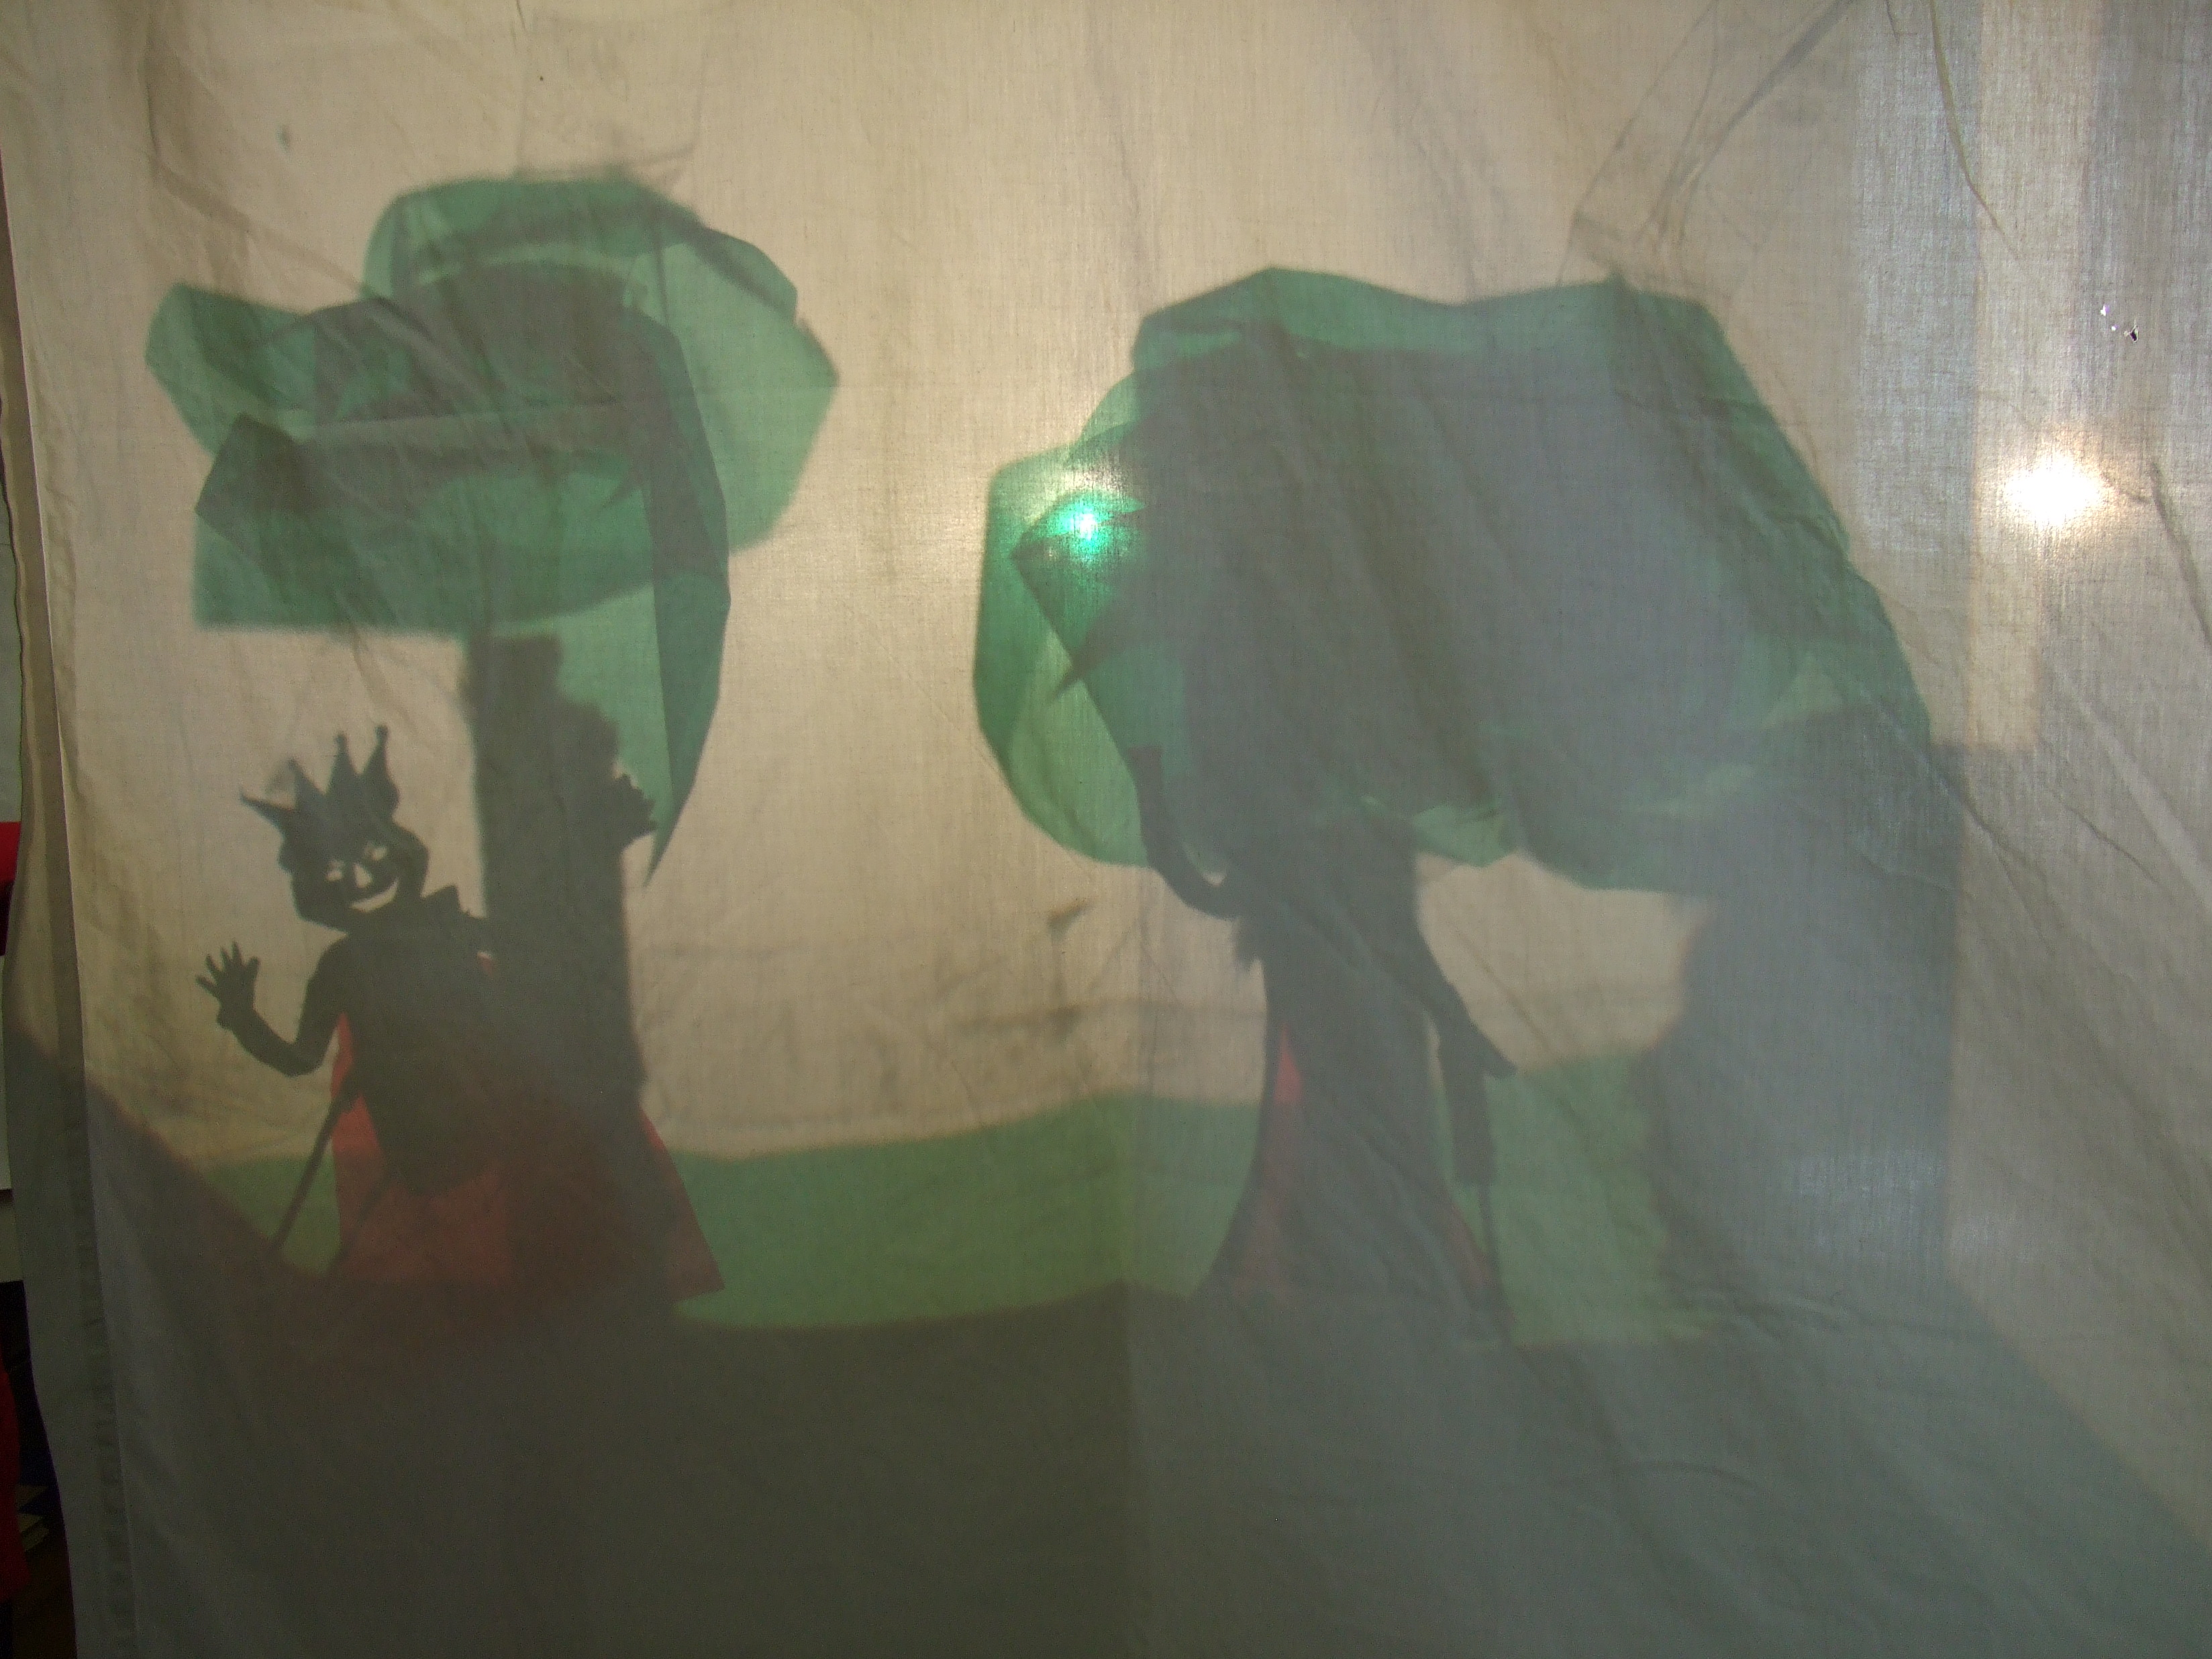 Shadow Puppet set on overhead projector from Dublin City Council's Children's Art In Libraries Programme, Drumcondra.